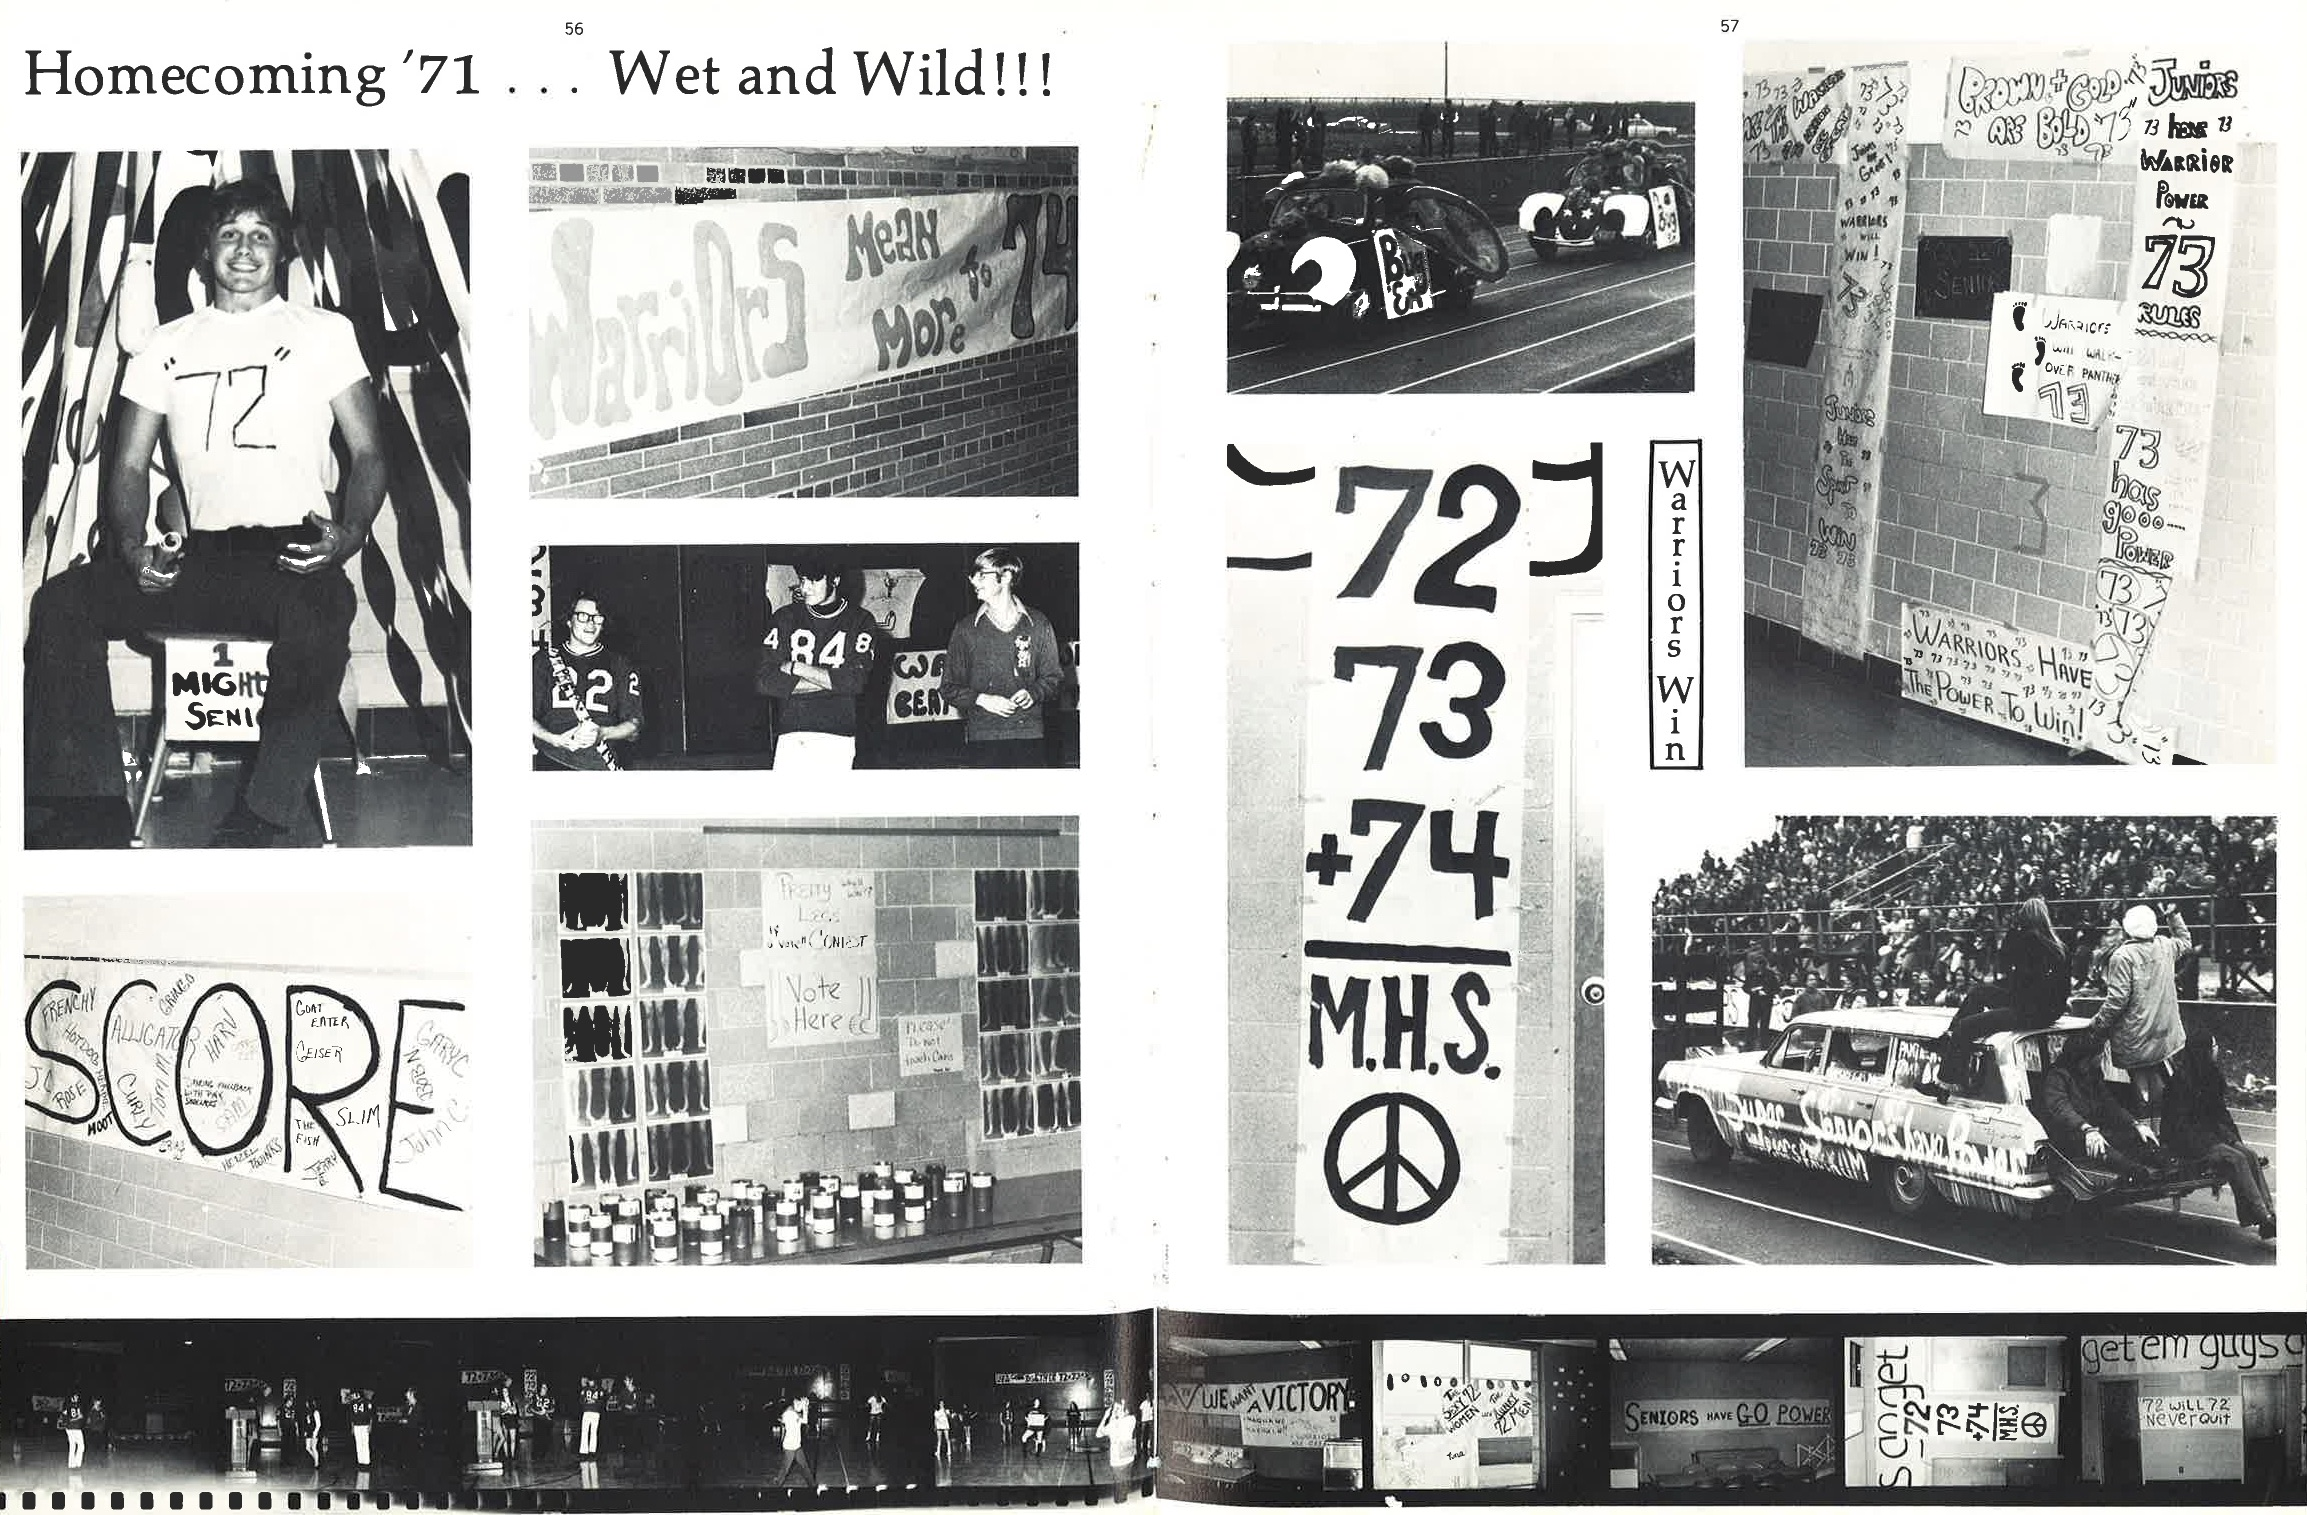 1972_Yearbook_56-57.jpg